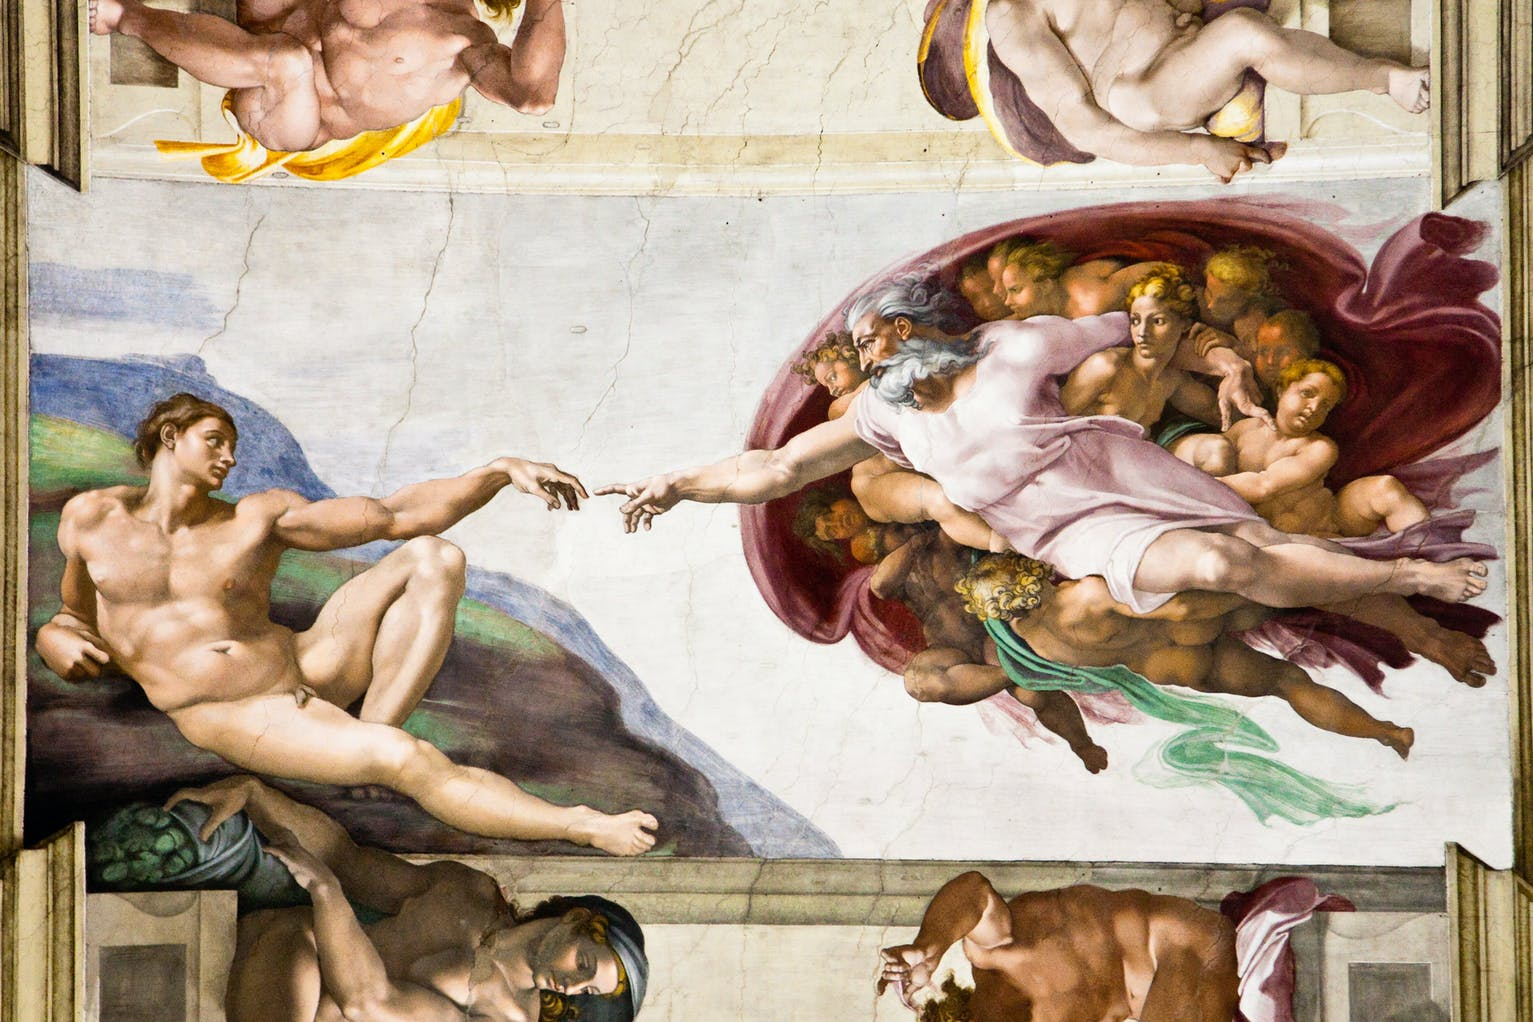 Vatican Museums Skip-the-Line Tickets with Optional Saint Peter's Basilica